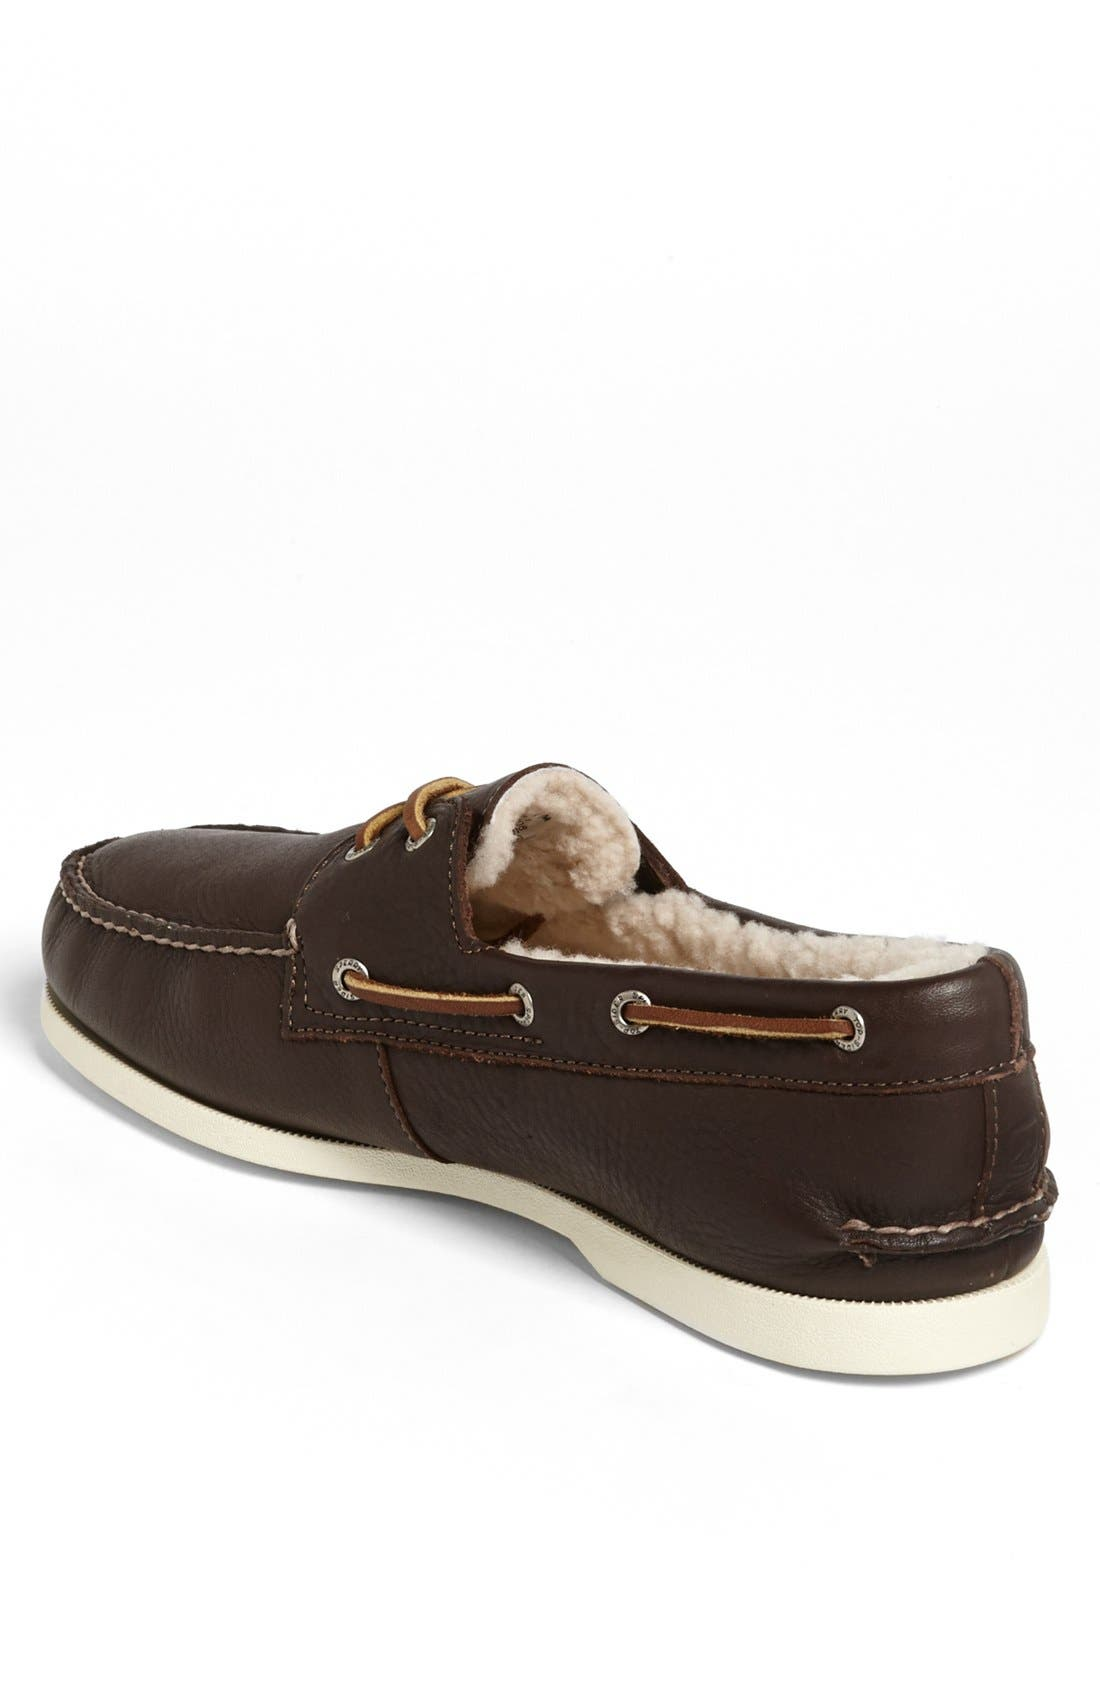 Alternate Image 2  - Sperry Top-Sider® 'Authentic Original - Winter' Boat Shoe